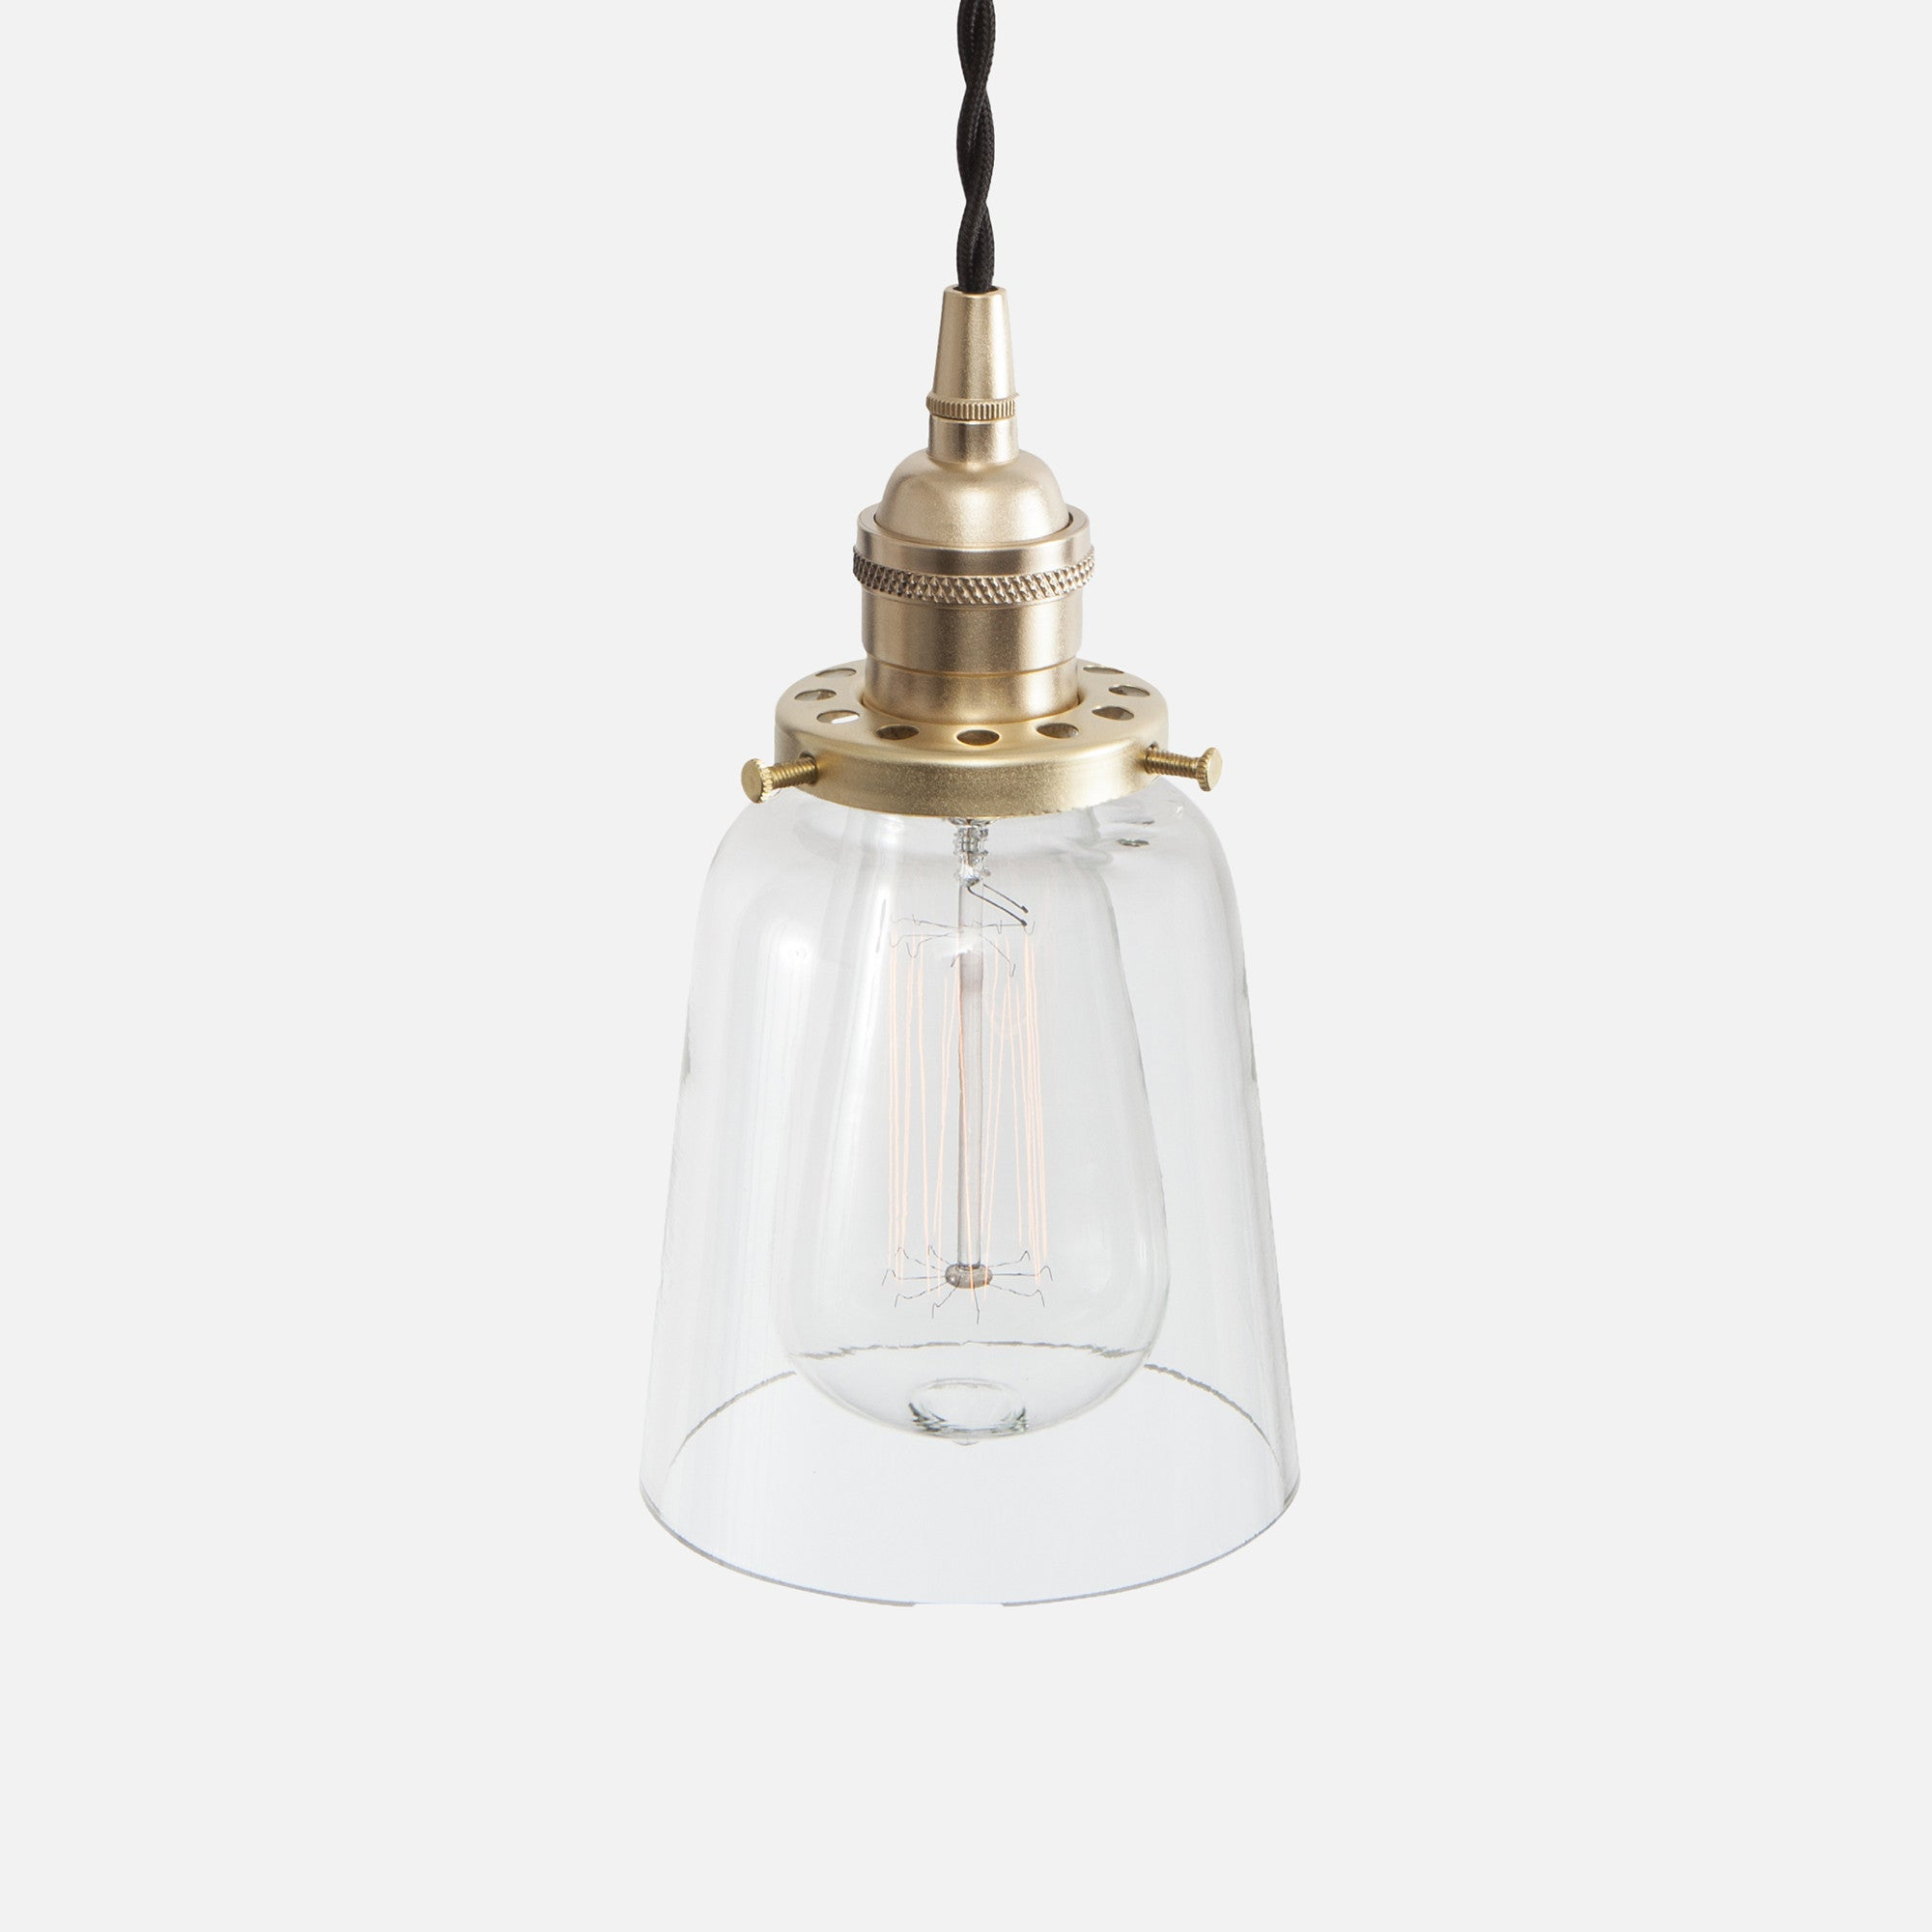 Vintage Socket Pendant Light - Clear Glass Straight Bell Shade - Raw Brass Patina